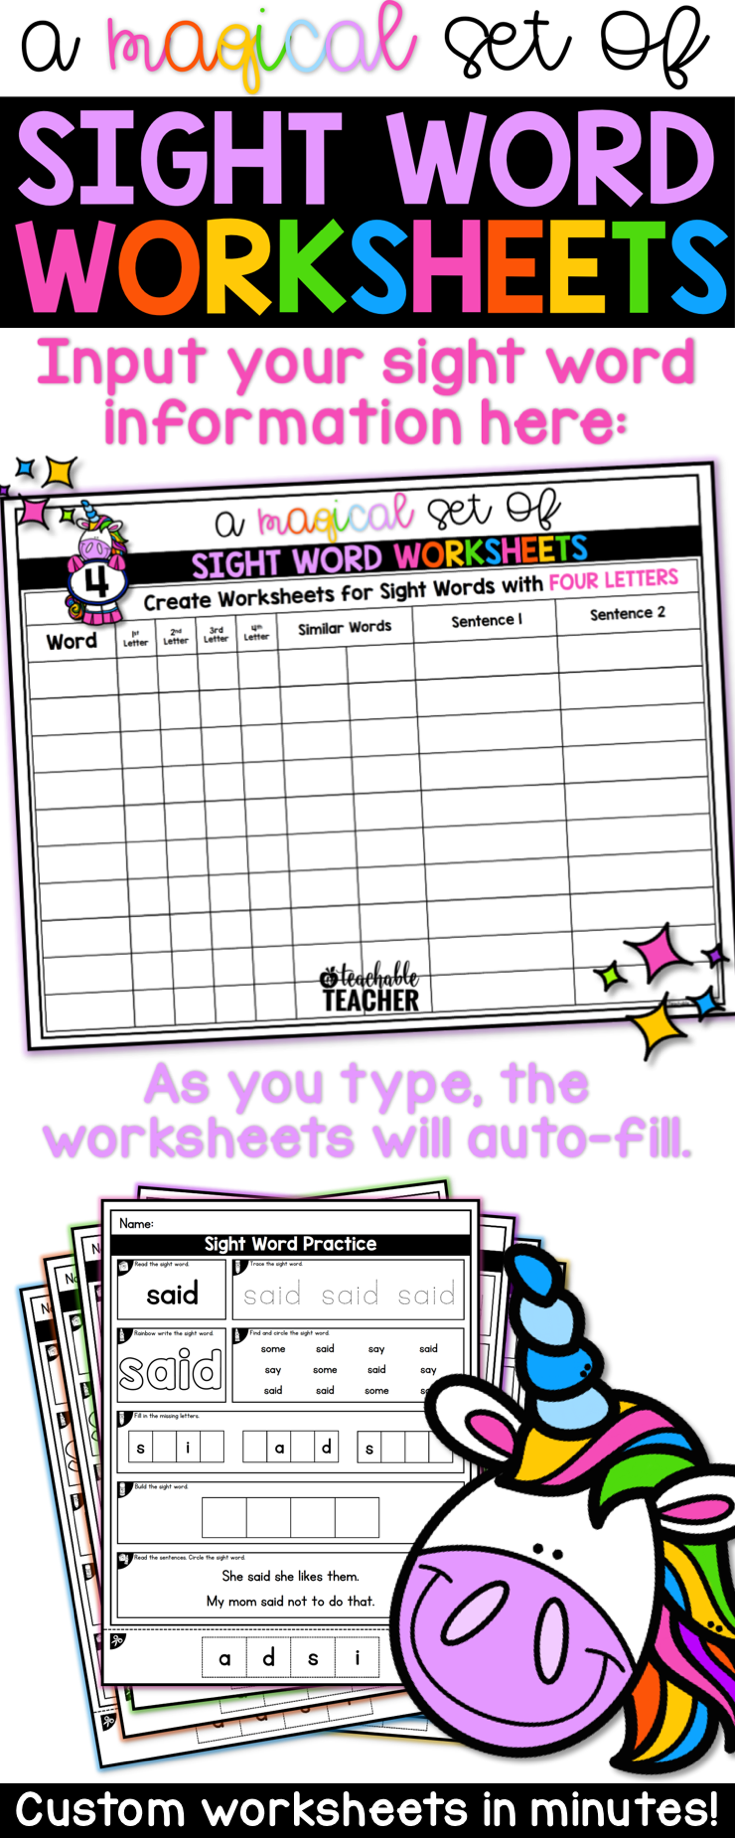 Editable Sight Word Worksheets | Homeschool Resources & Ideas by ...